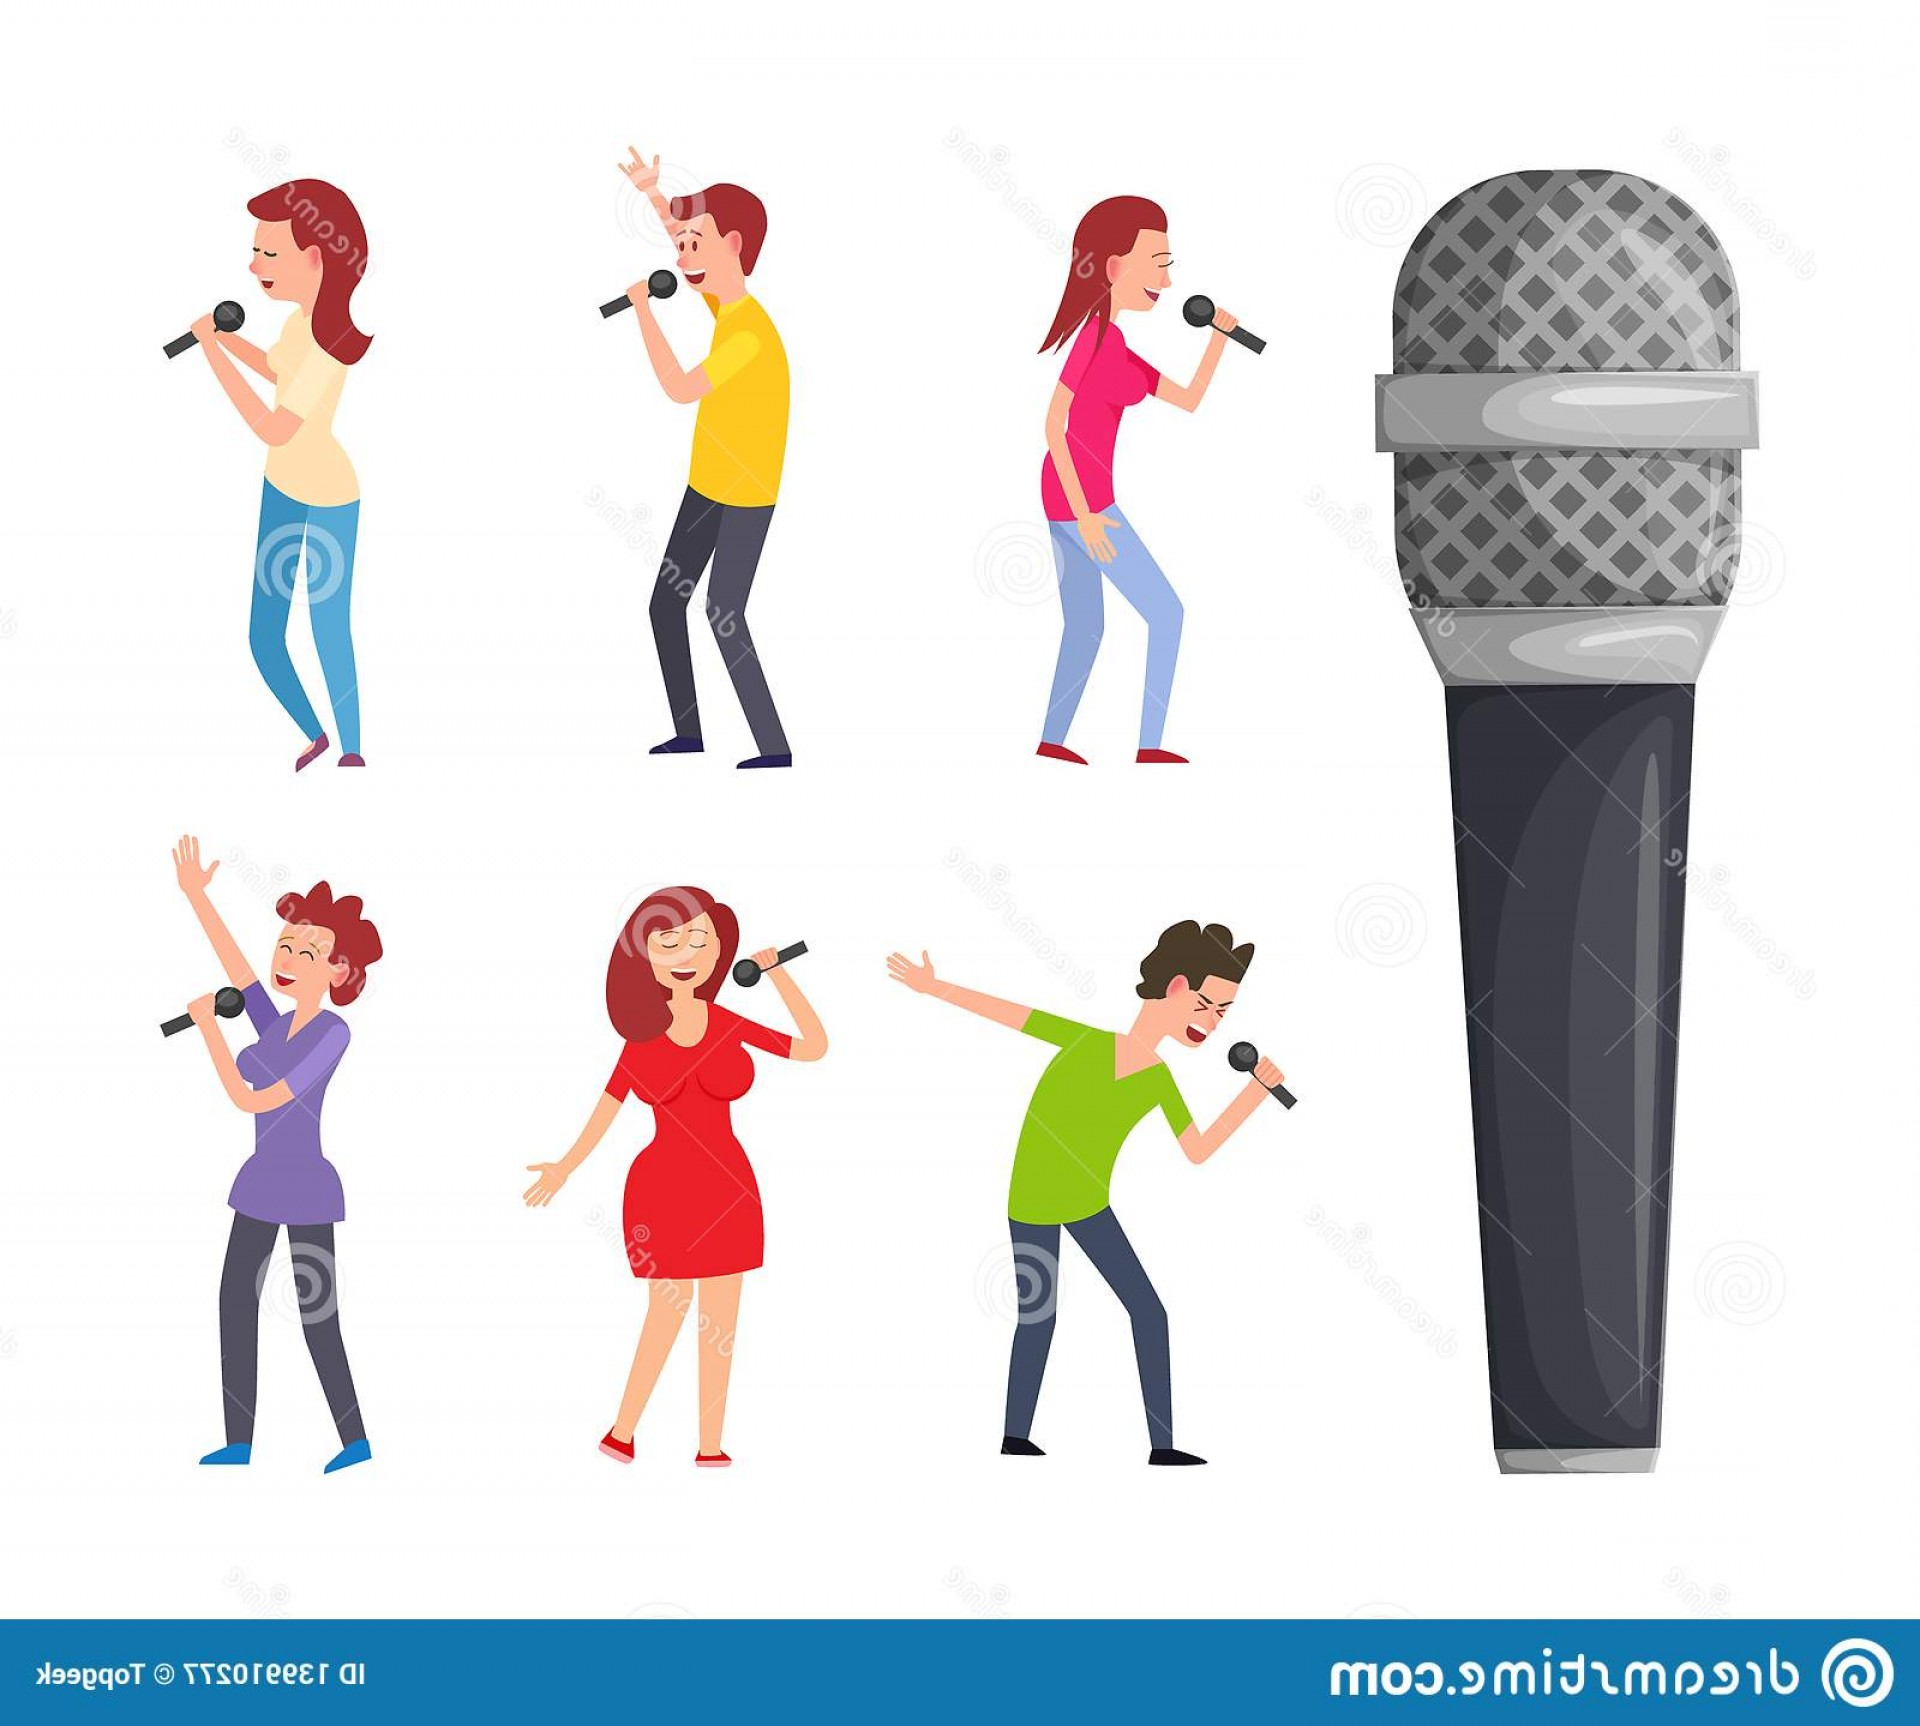 Singers Vector Art: Singers Microphone Men Women Singing Pop Artists Performers Celebrities Sing Songs Musical Electric Device Isolated Vector Image